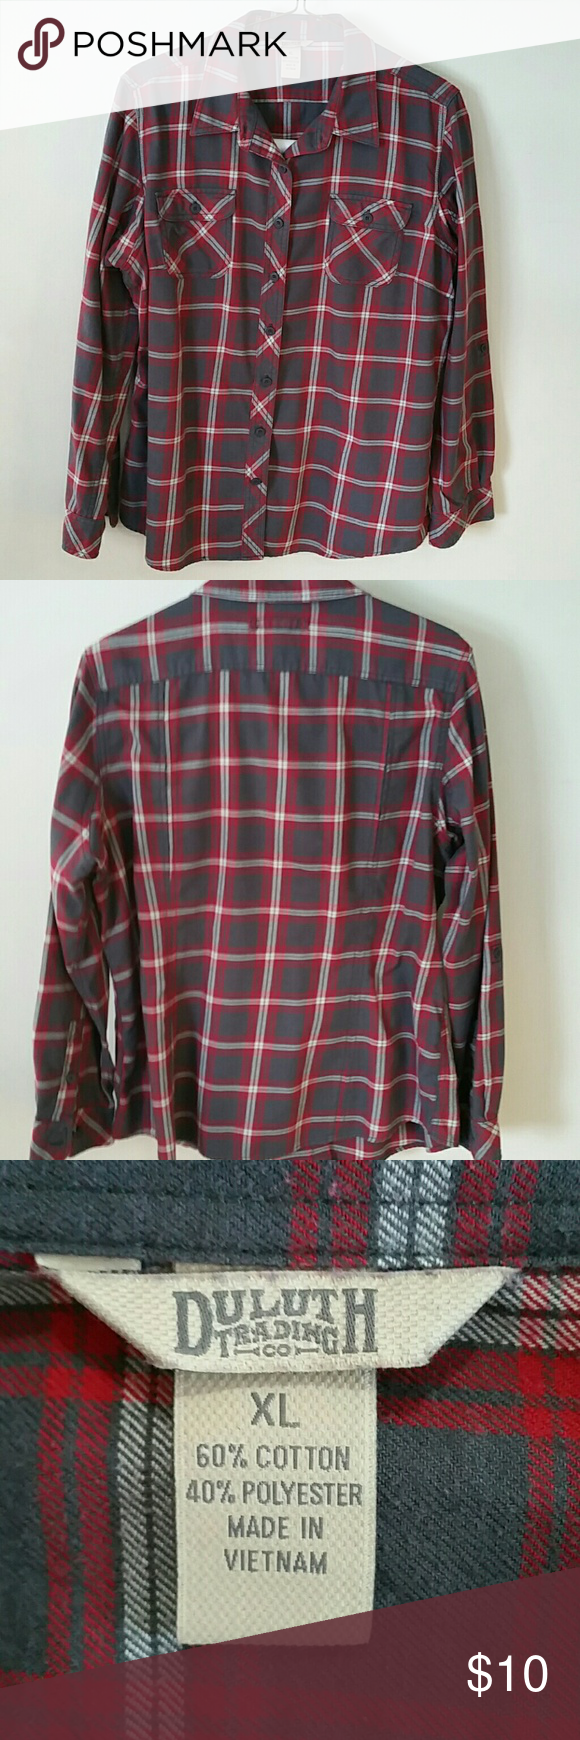 Grey flannel jacket  Duluth trading co flannel shirt  Duluth trading Flannel shirts